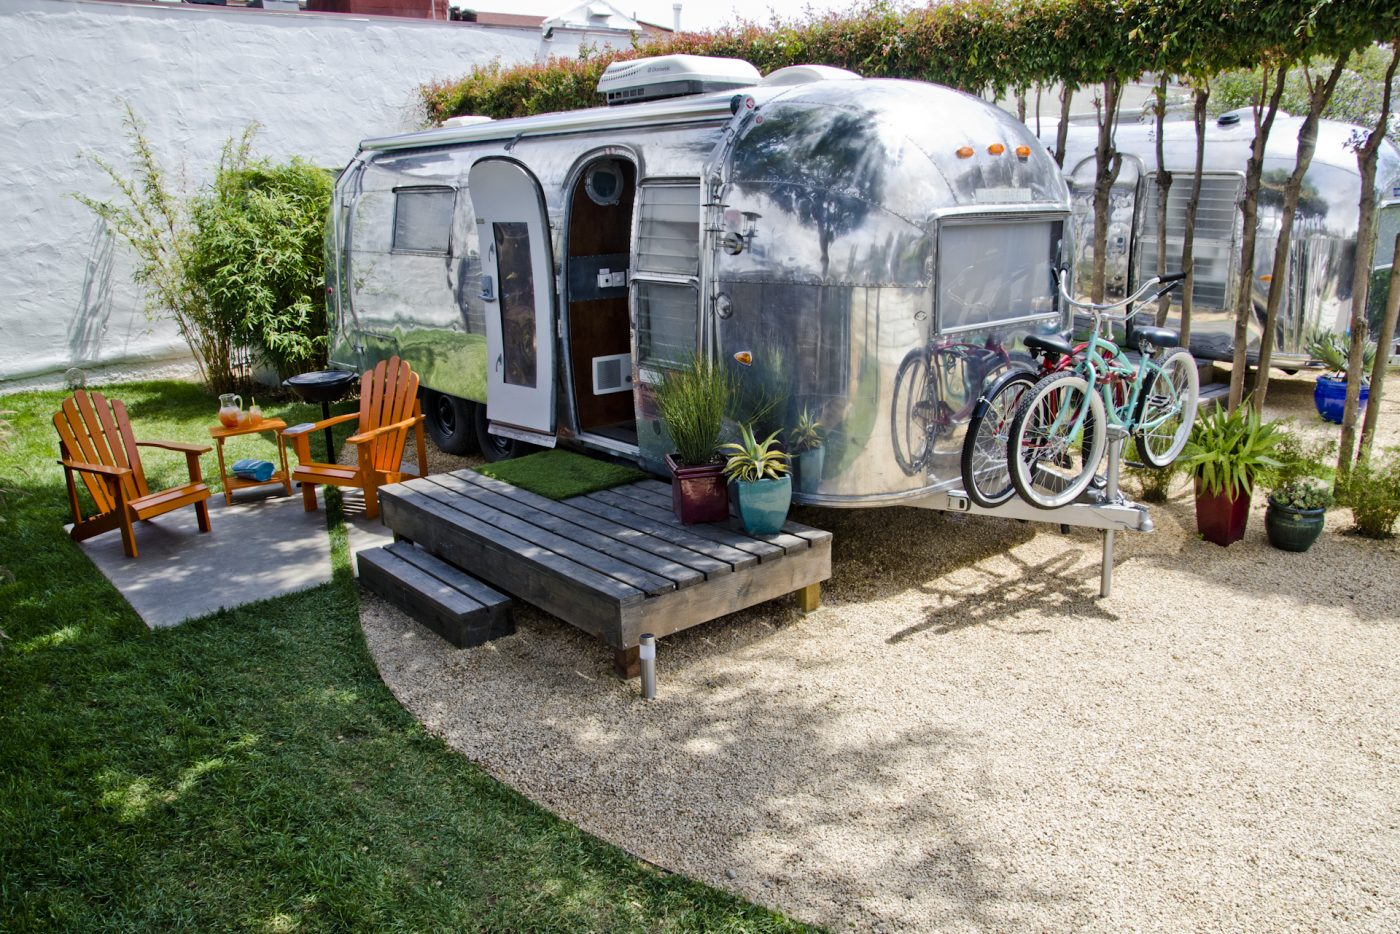 Russian River Outdoor Lodging via  AutoCamp (Experience Varies)